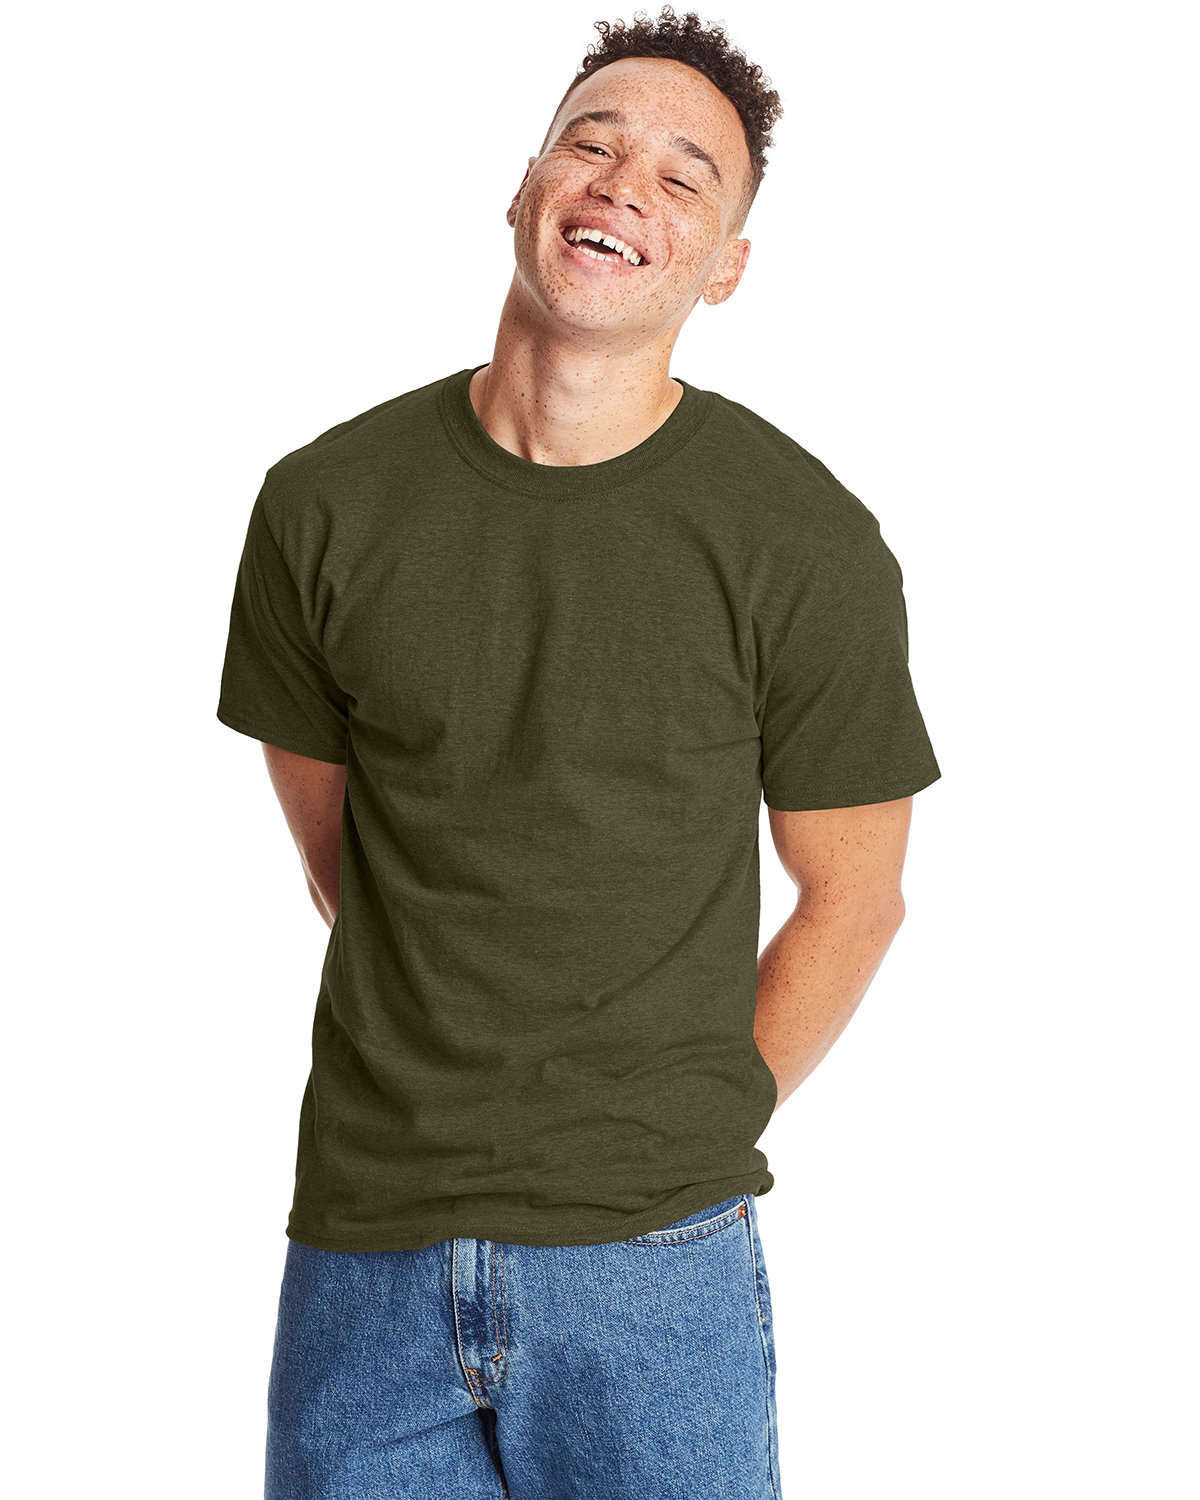 Hanes Unisex Beefy-T® T-Shirt MILITARY GRN HTH